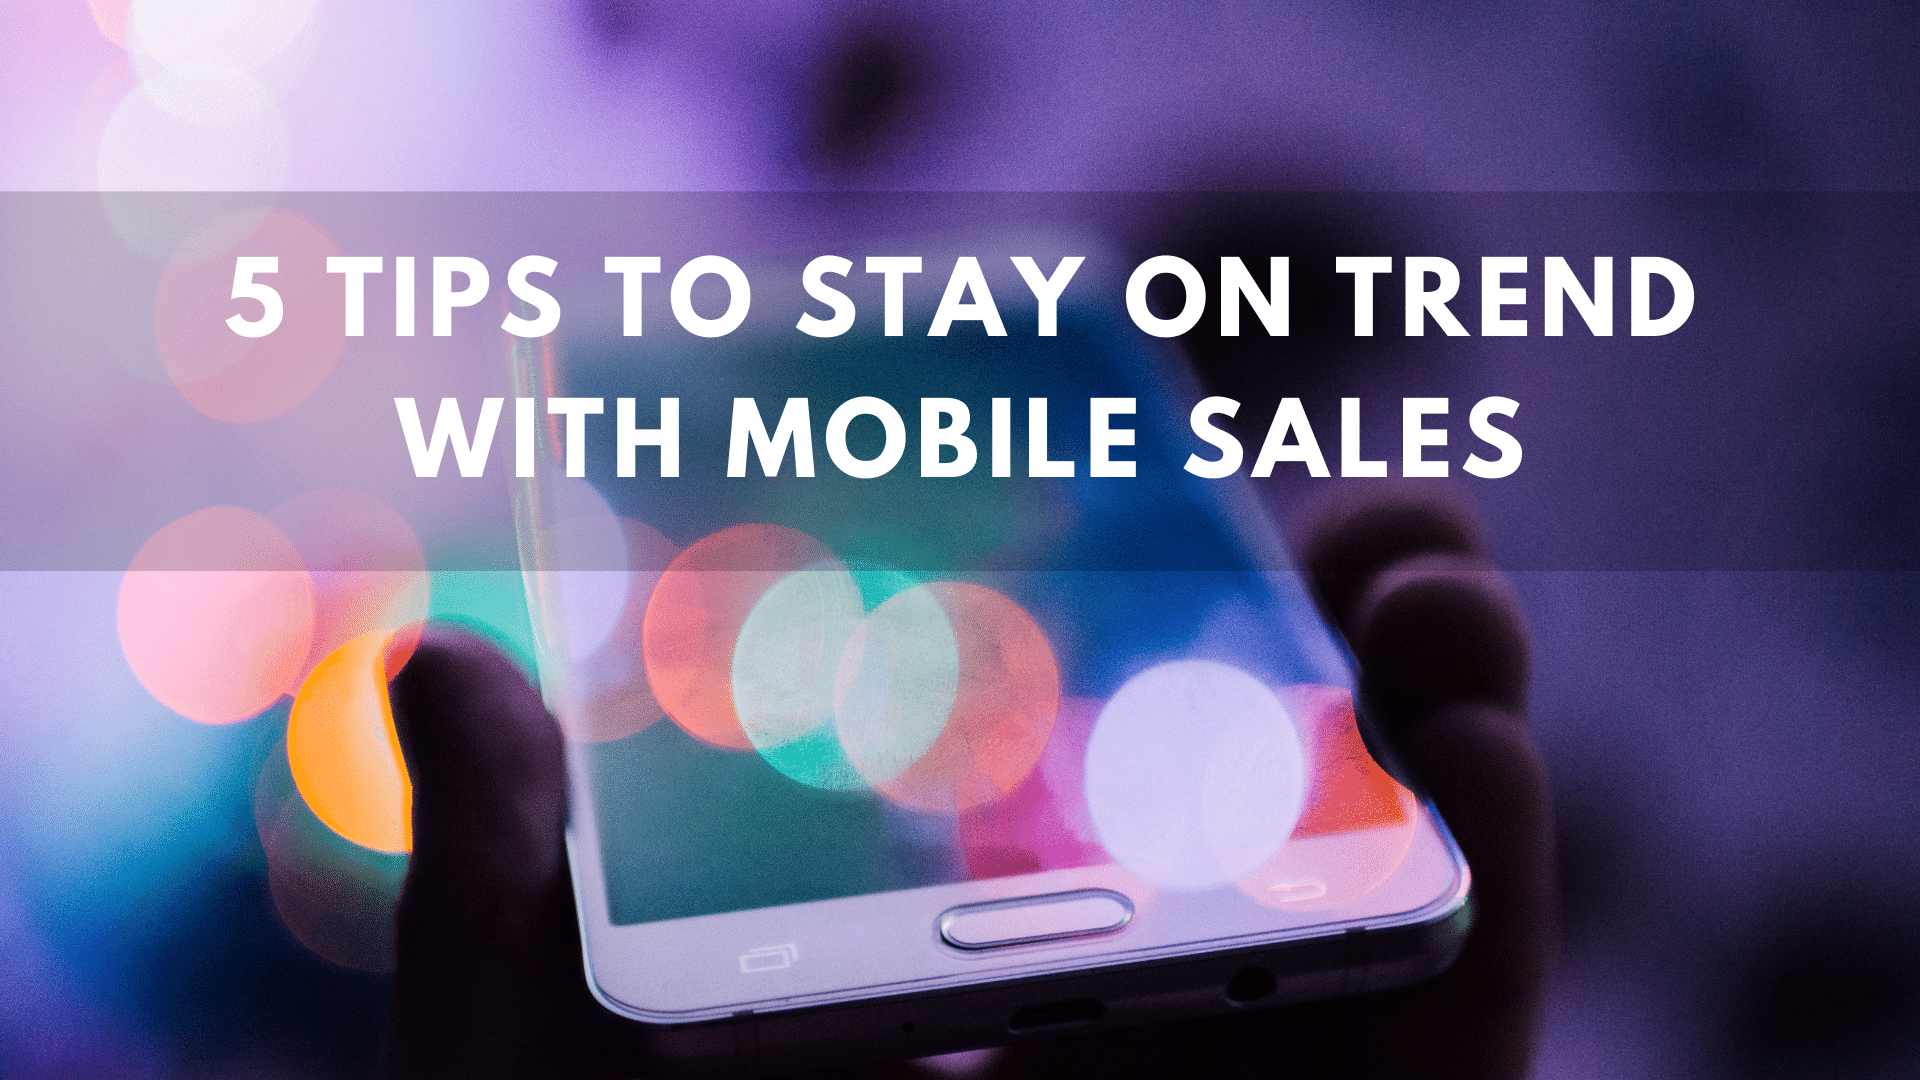 5 Tips to Stay on Trend with Mobile Sales